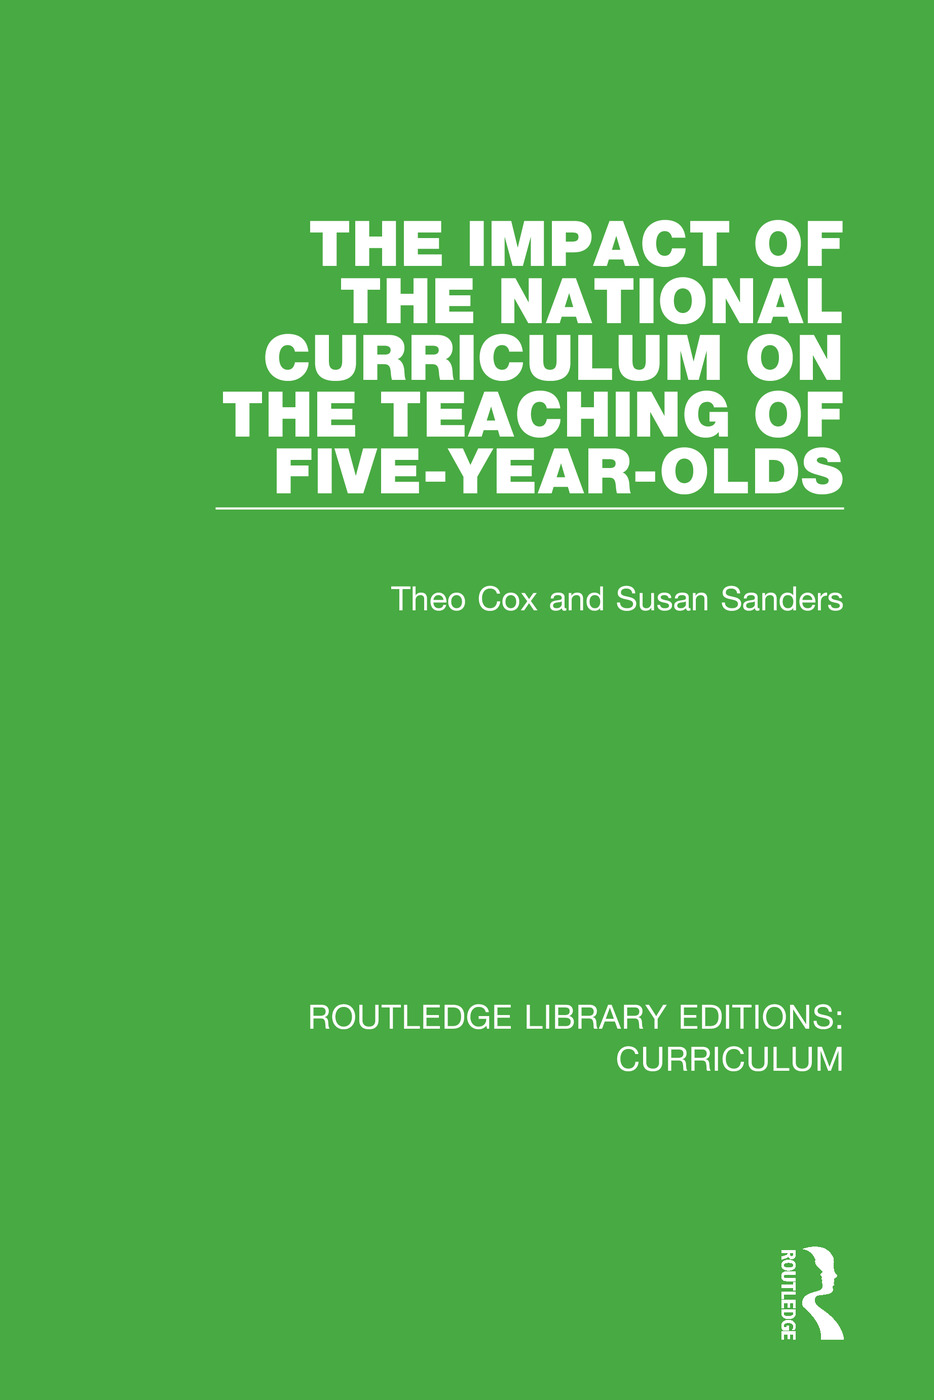 The Impact of the National Curriculum on the Teaching of Five-Year-Olds book cover